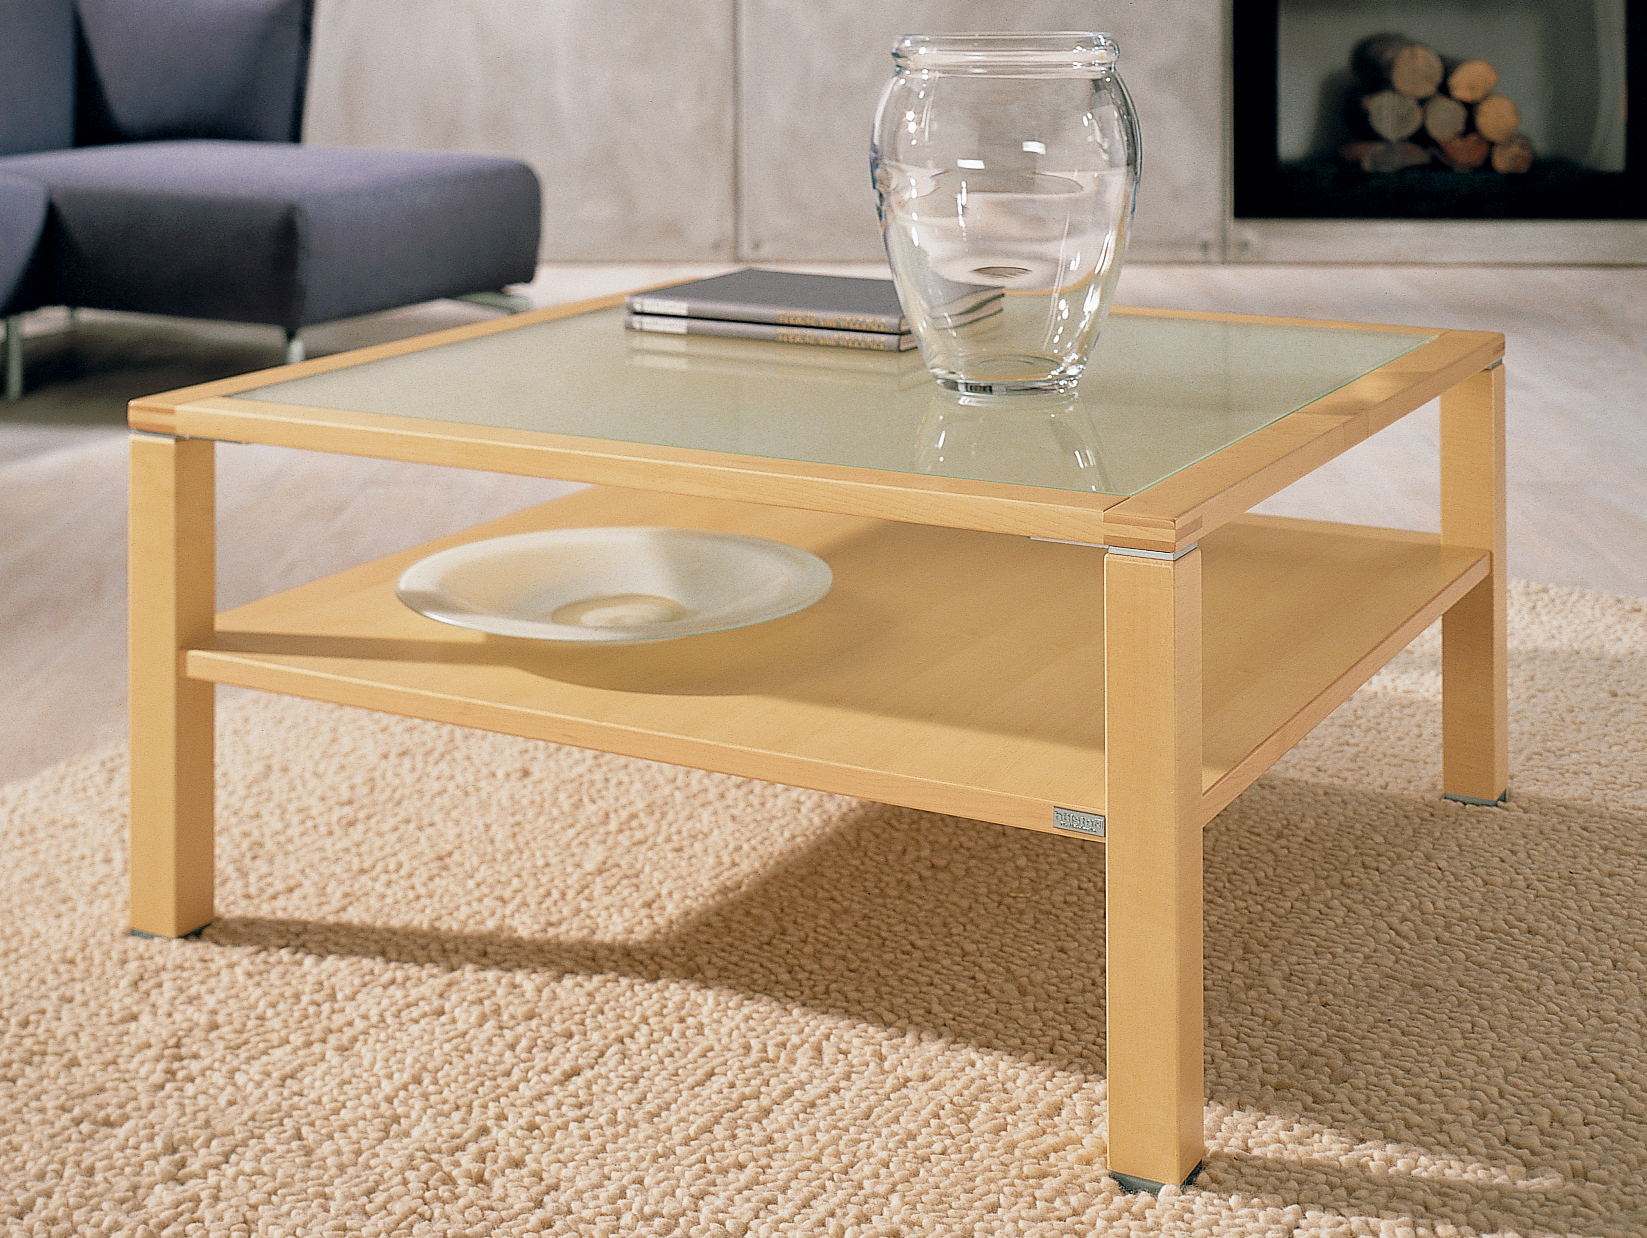 Maple Coffee Table Design s